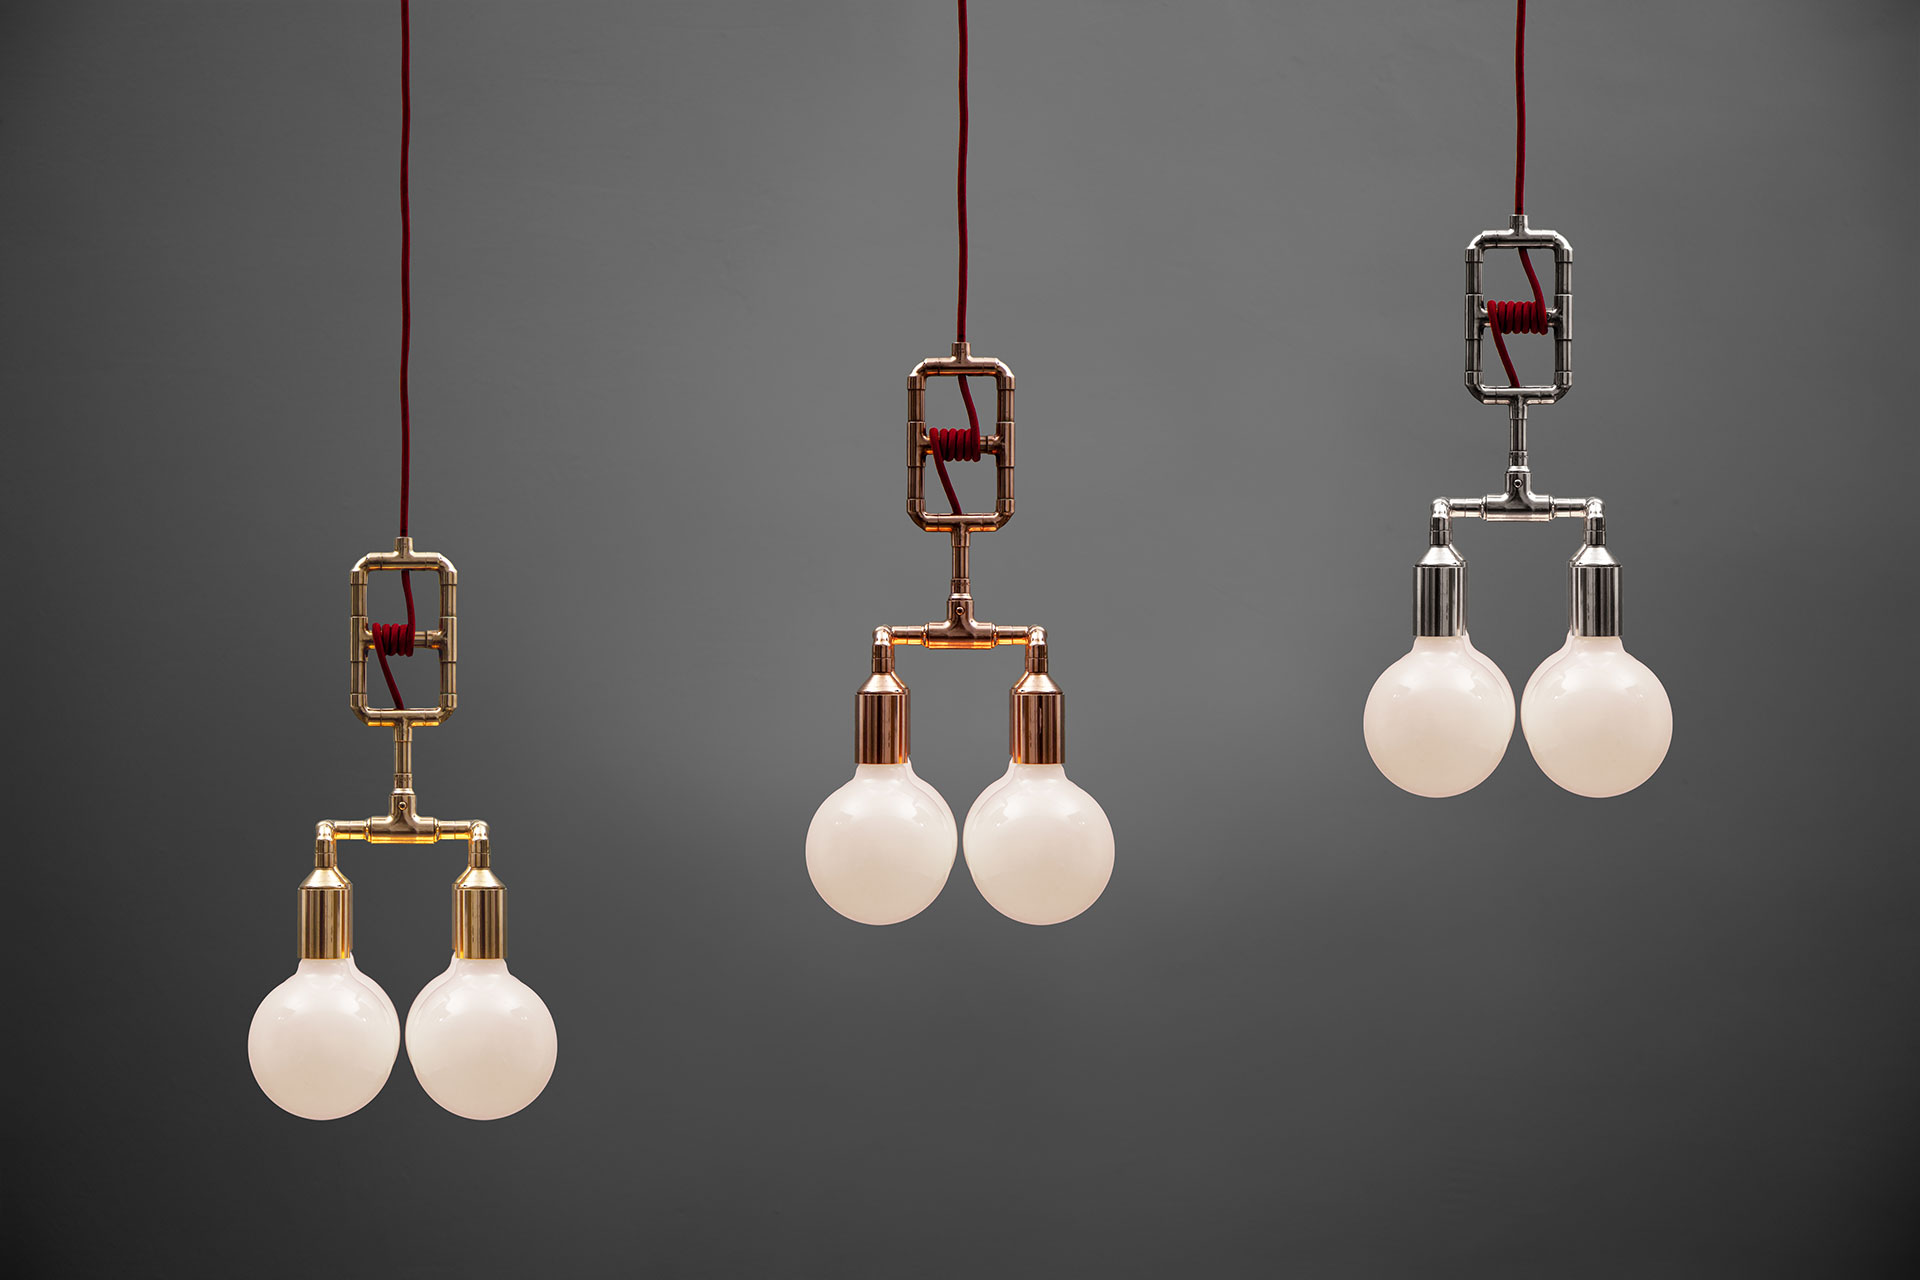 Adjustable height ceiling lamps in brass, copper and nickel metal finish inspired by modern loft design